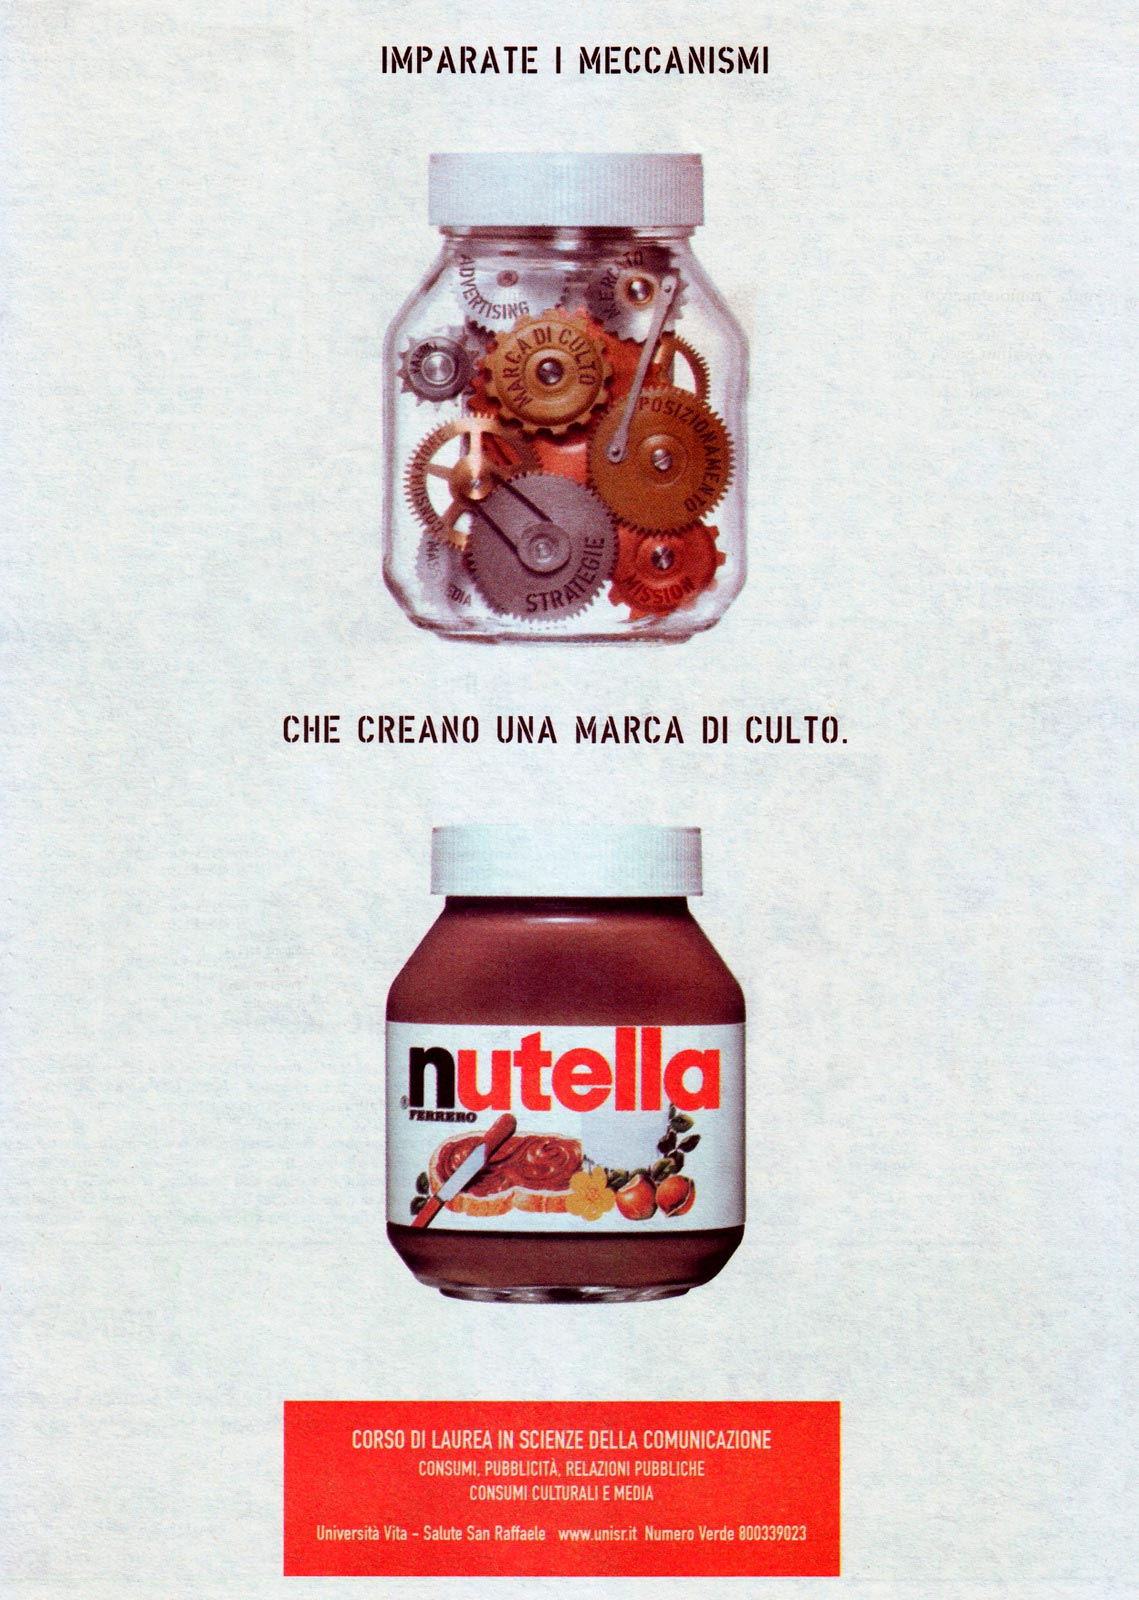 Nutella Francesco Magni food mockup Fuorizona food agency